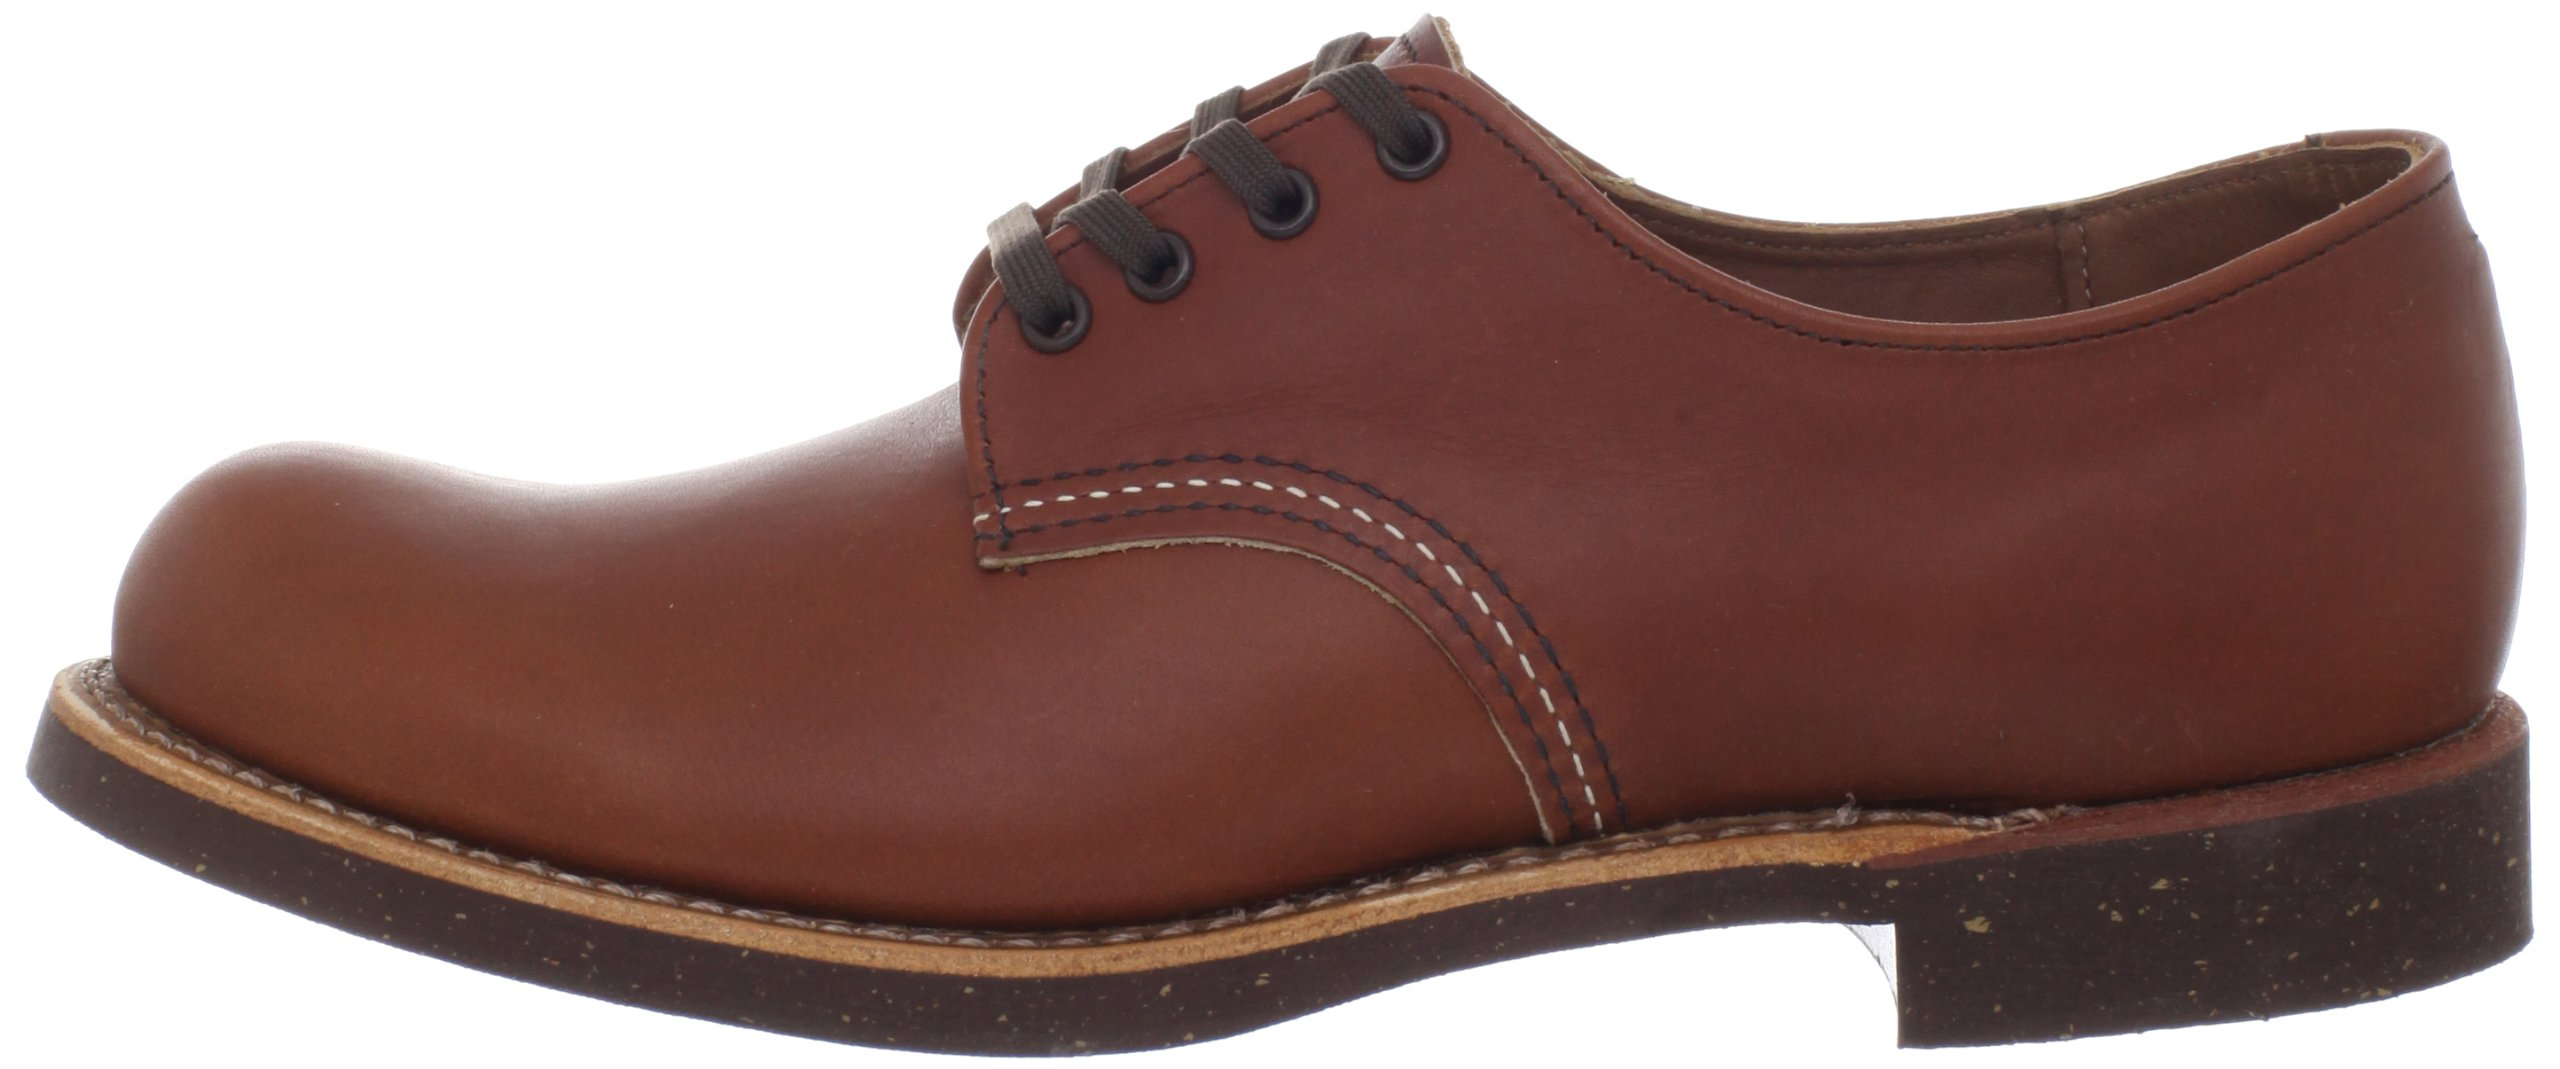 Red Wing Heritage Men's Work Oxford Shoe,Brick,10 D(M) US by Red Wing (Image #5)